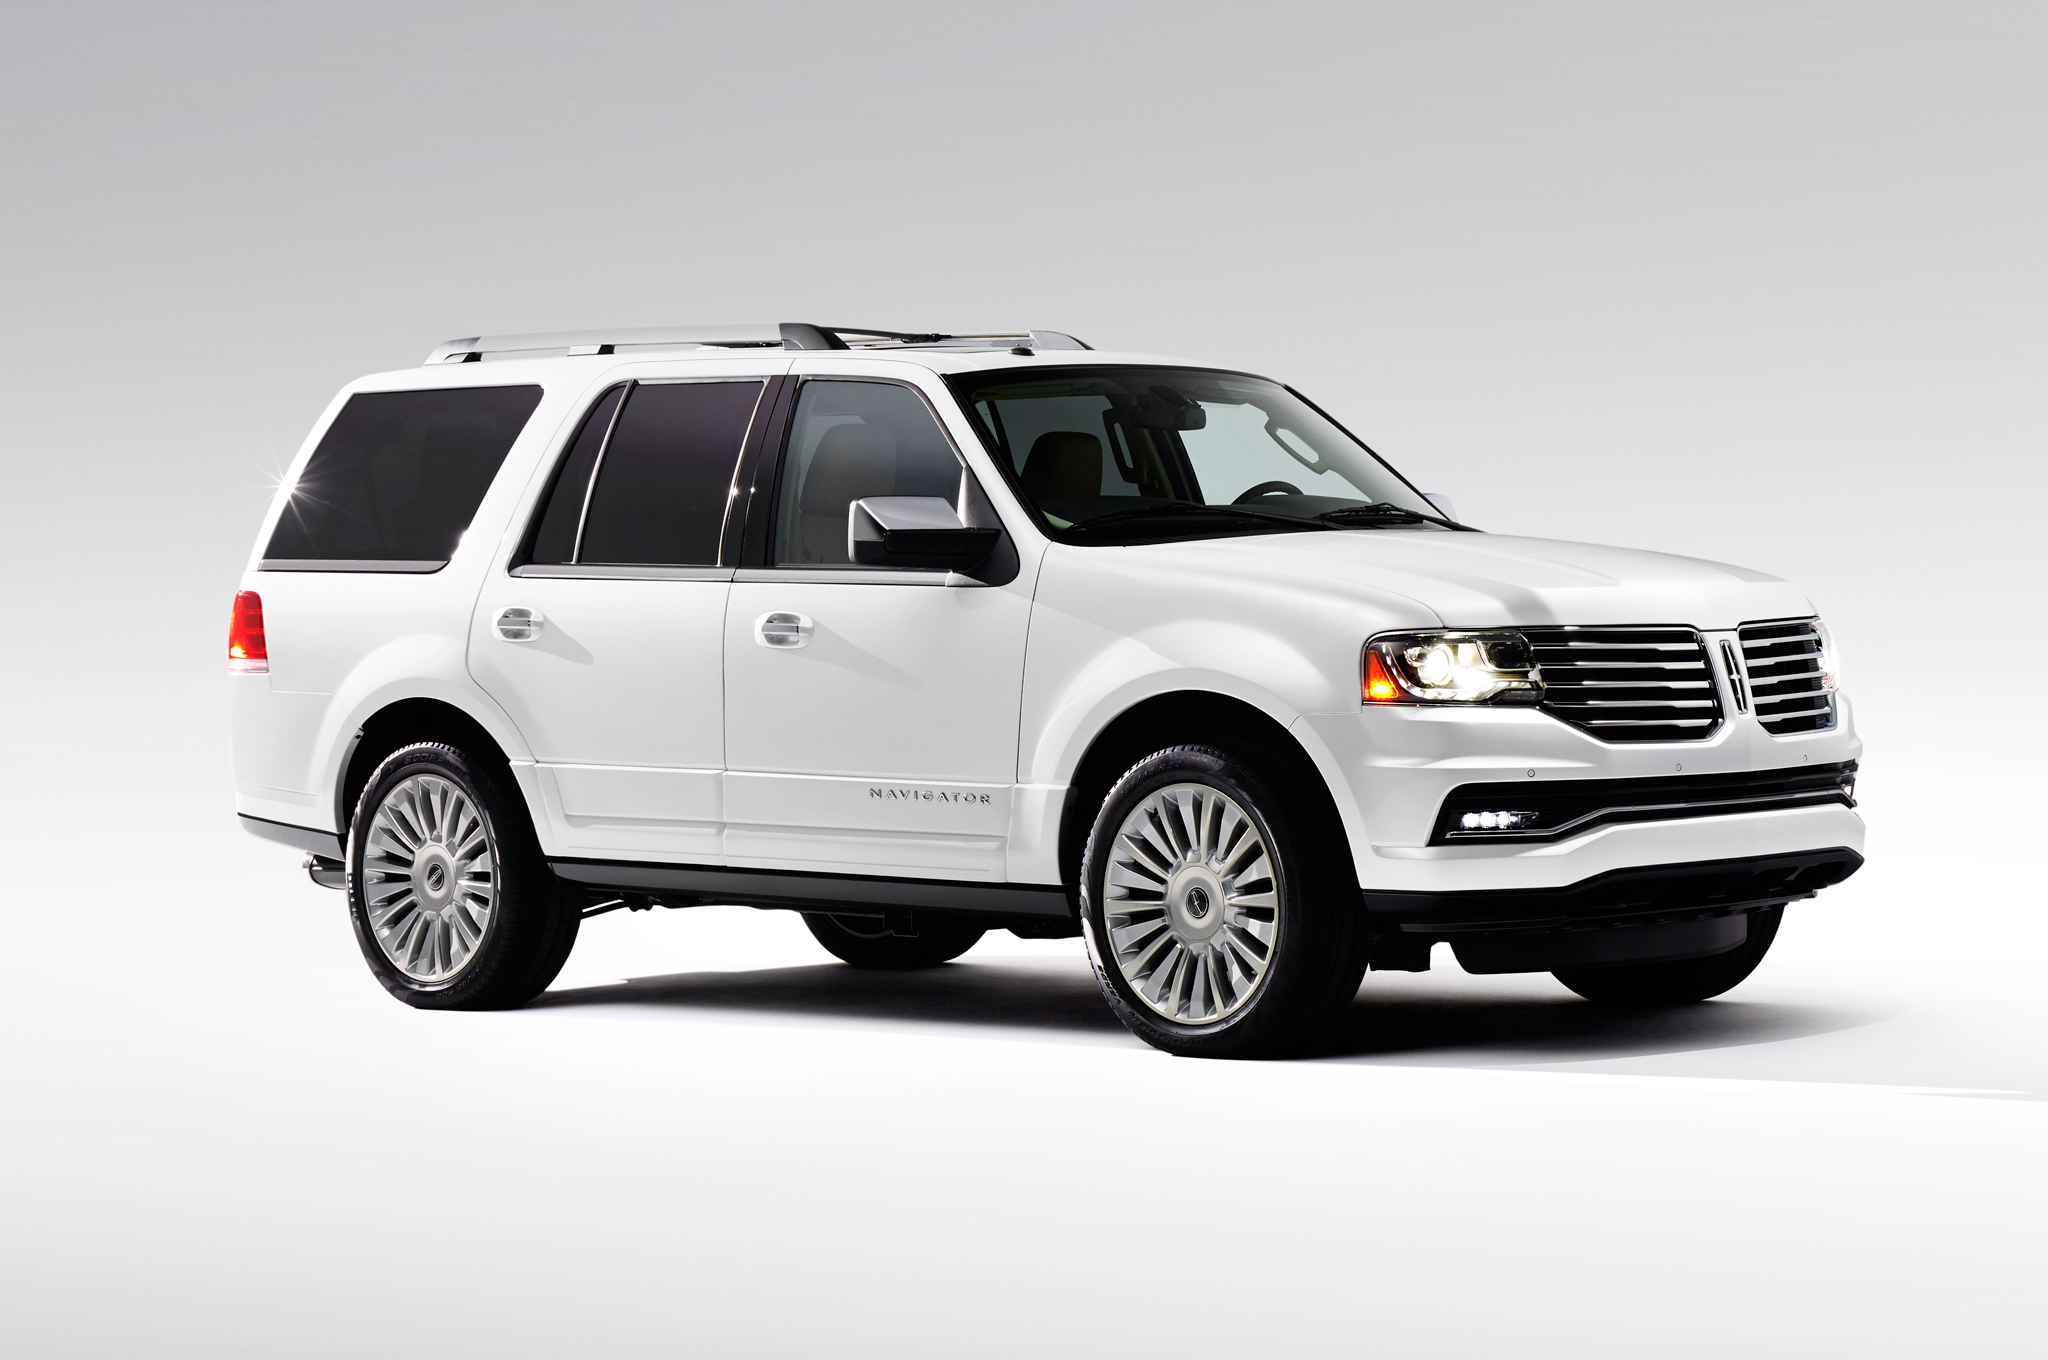 2015 lincoln navigator clipart transparent download AutomotiveTimes.com | Lincoln Navigator 2015 Photo Gallery transparent download